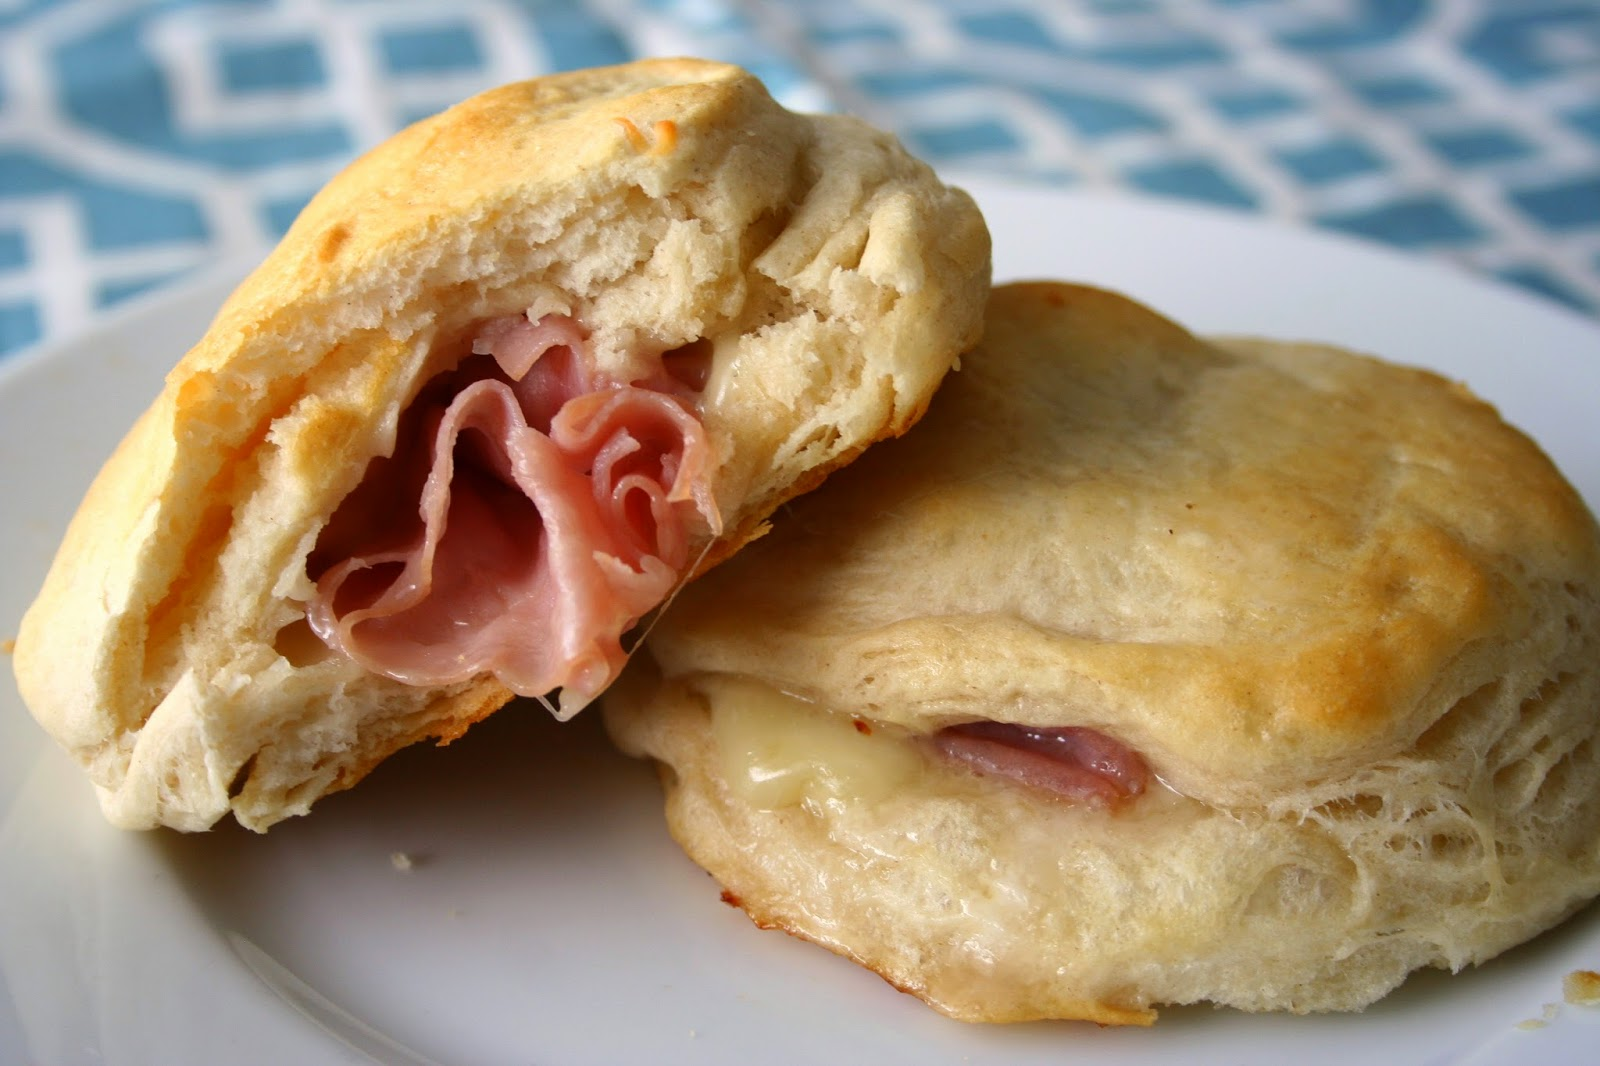 ... biscuits and they are even better with some ham and cheese stuffed